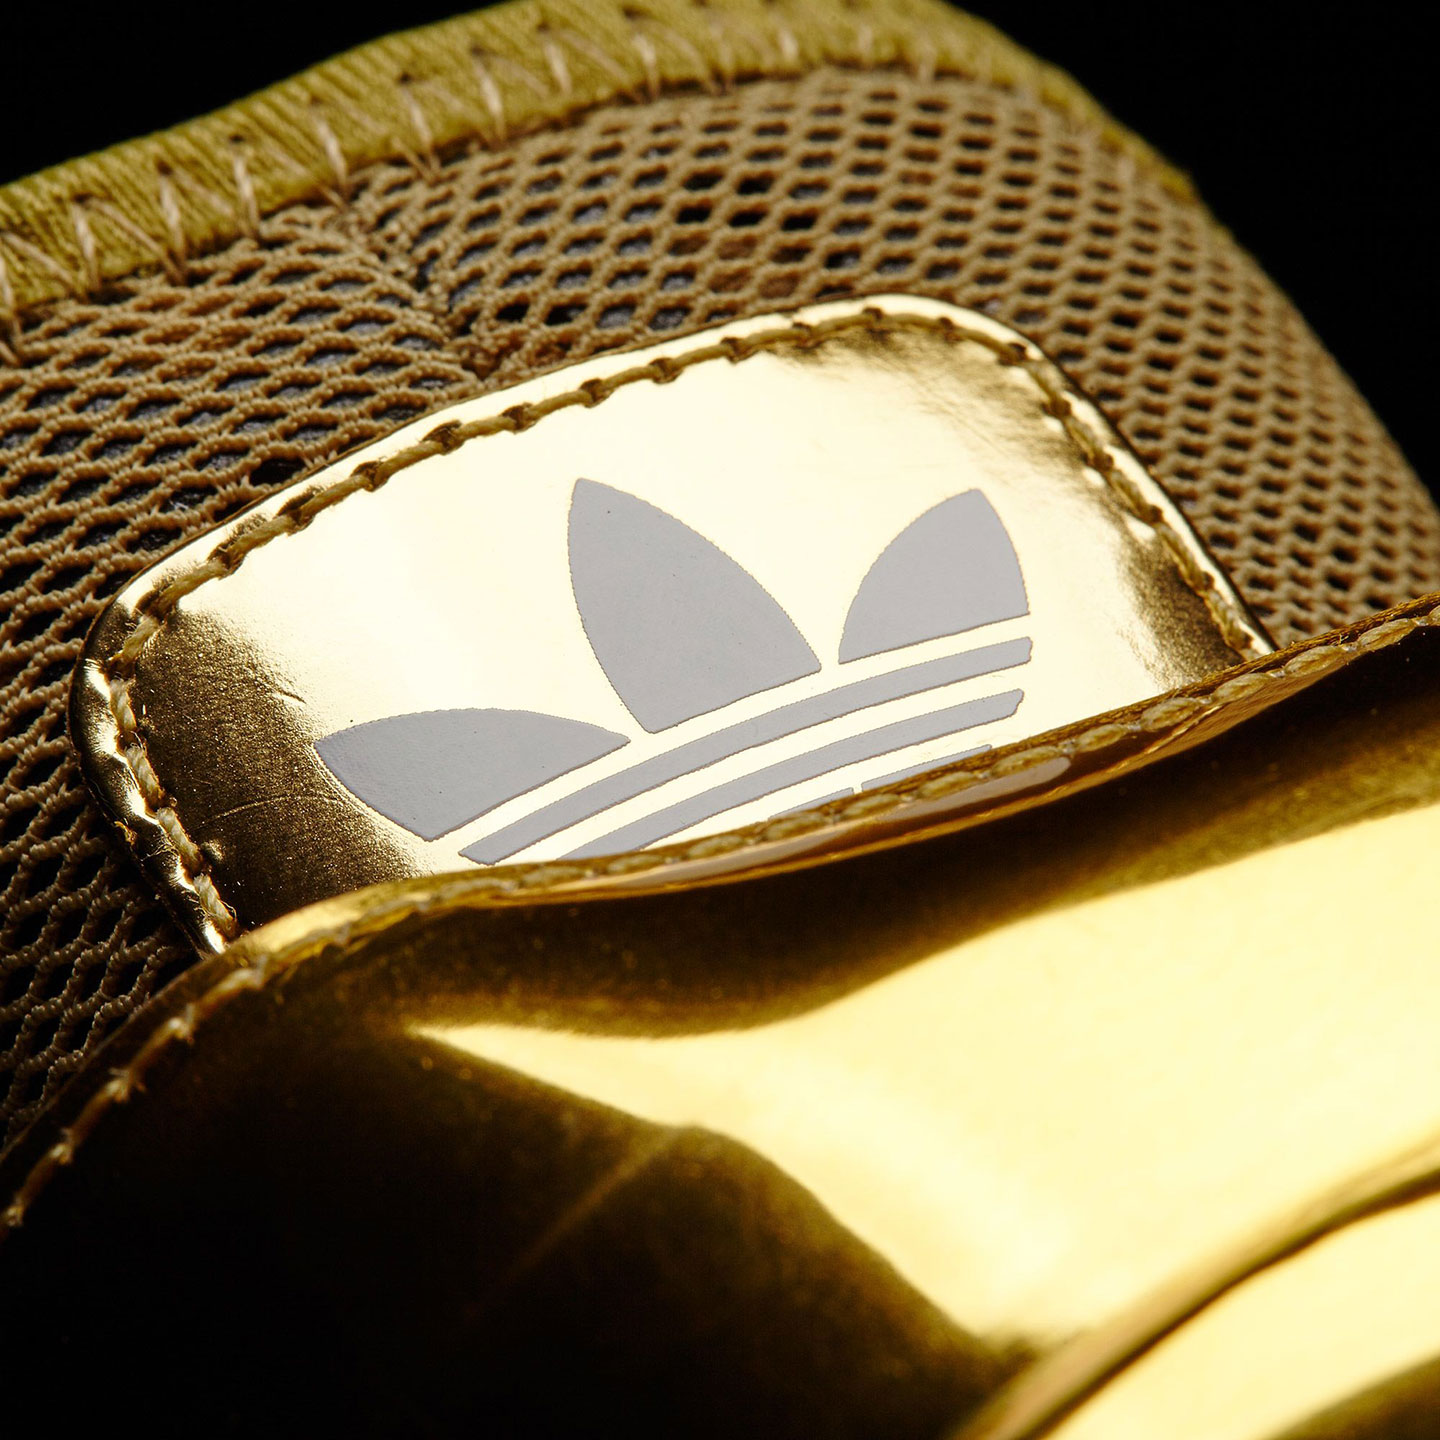 Flying high with gold Adidas Wings 3 Jeremy Scott sneakers